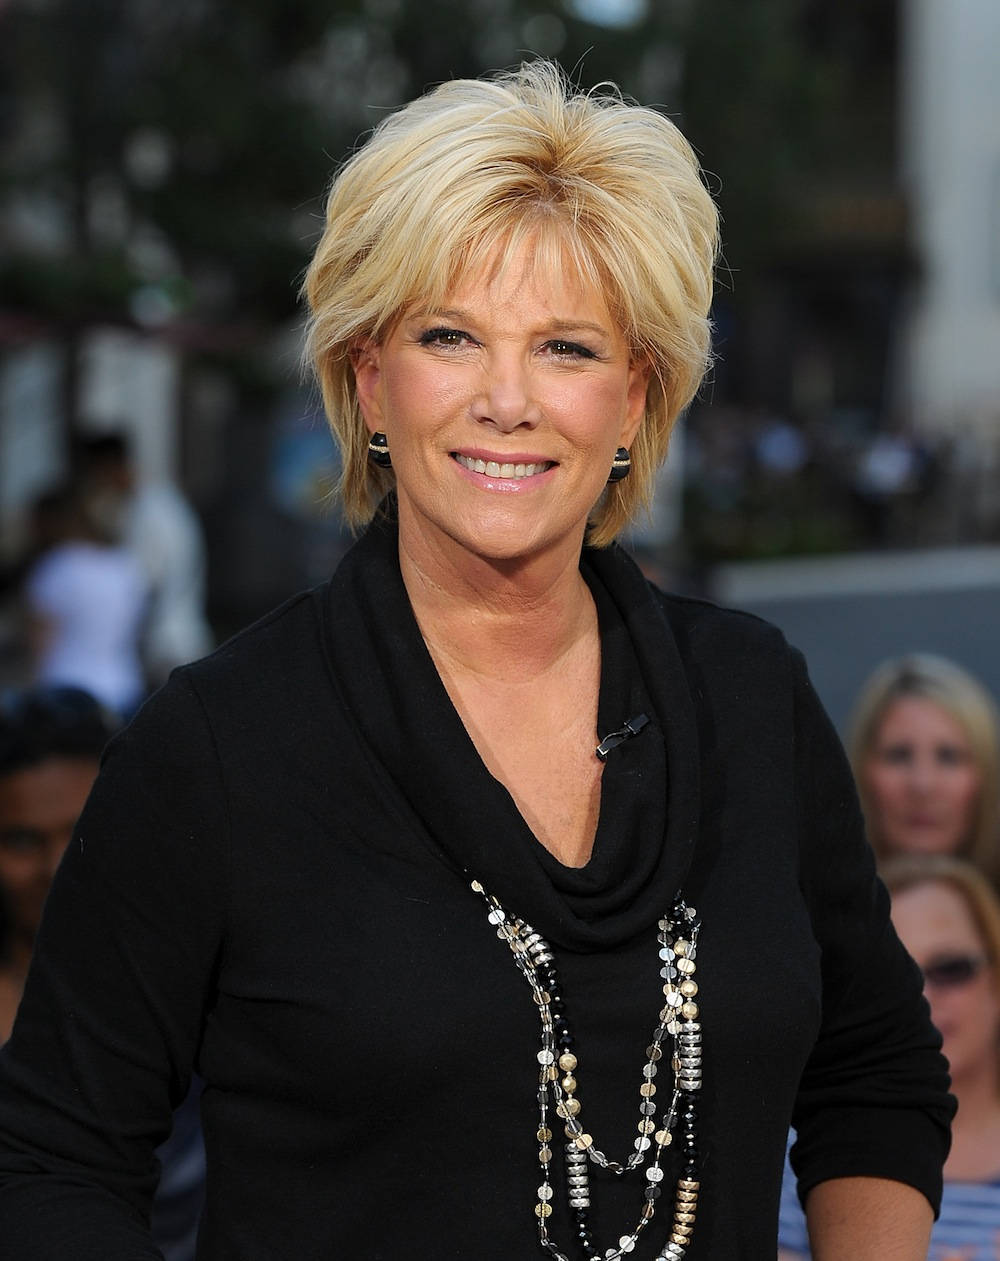 joan-lunden-shaves-head